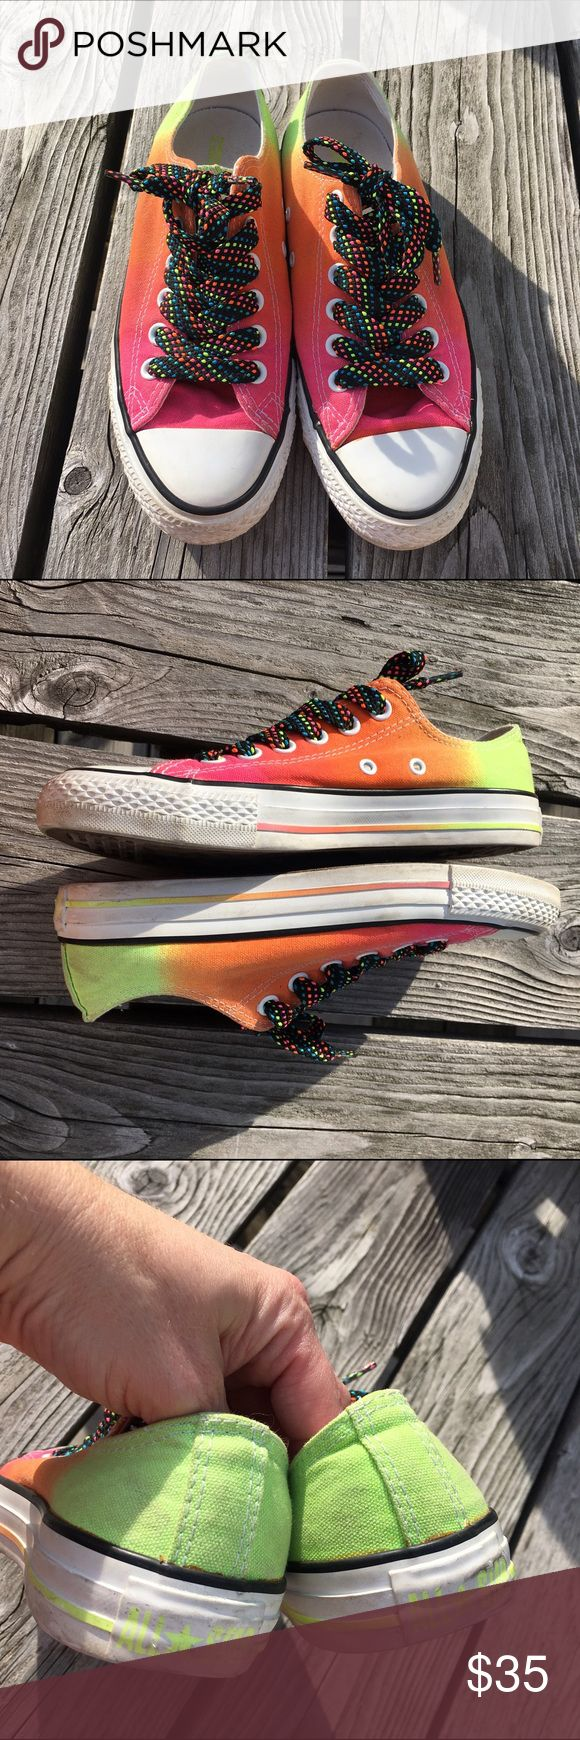 List! Ombré Neon Converse! EUC! Crazy laces make this pair a winner!  Converse Shoes Sneakers